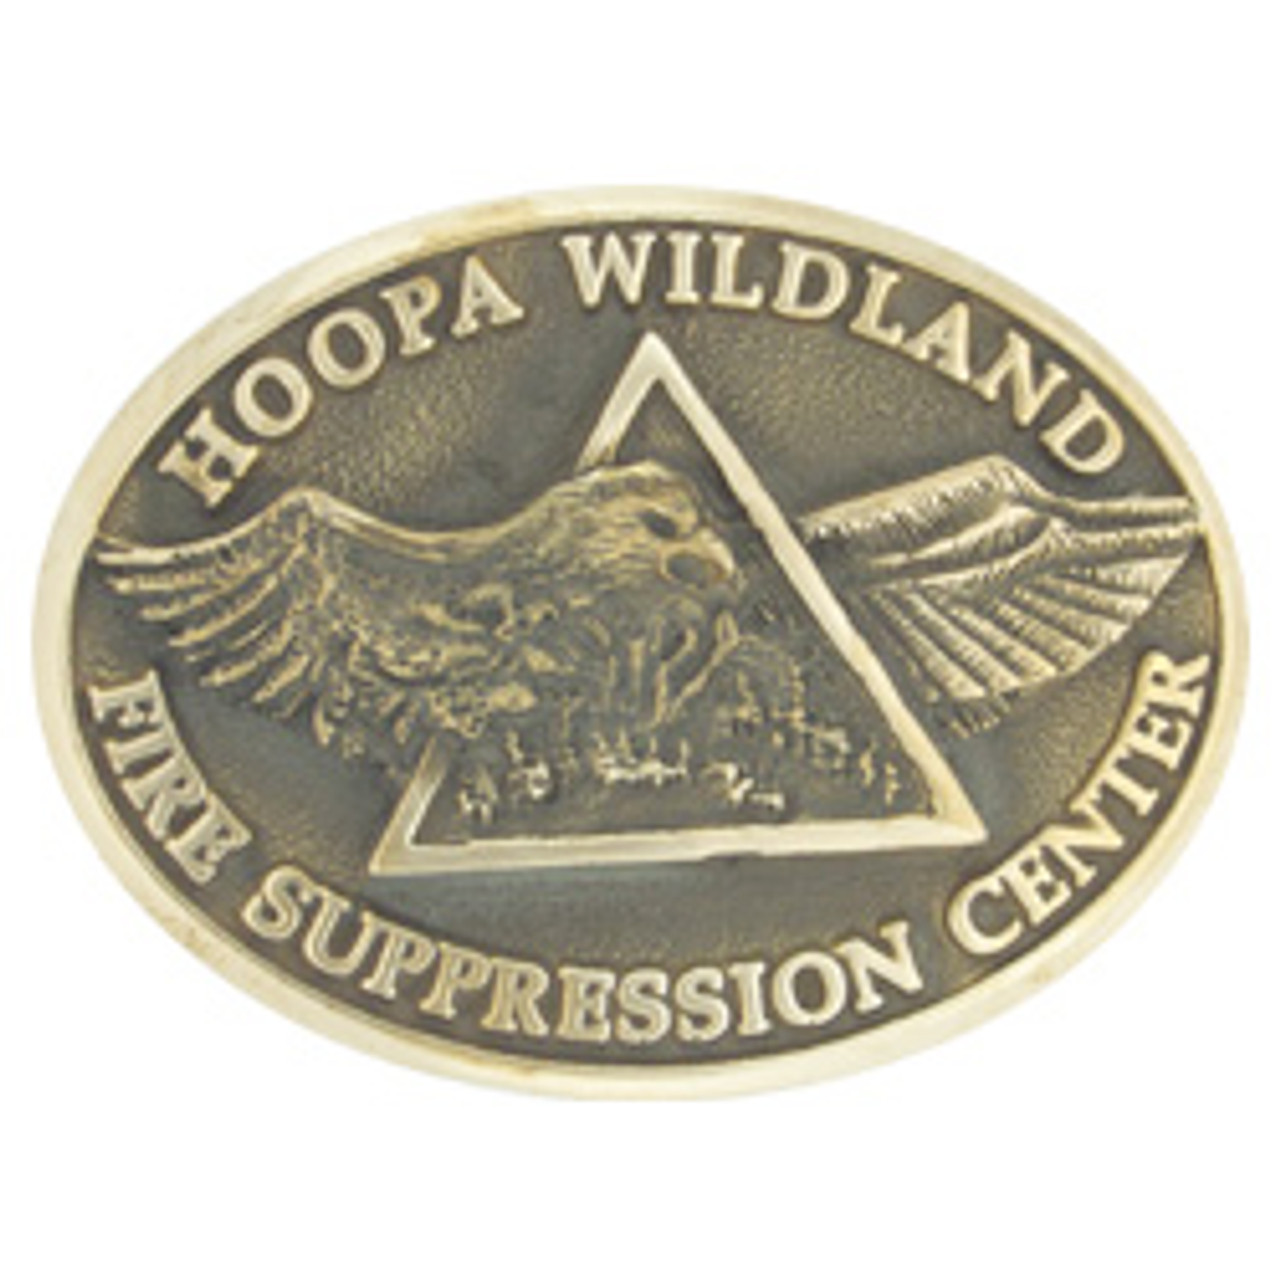 Hoopa Wildland Fire Suppression Buckle (RESTRICTED)